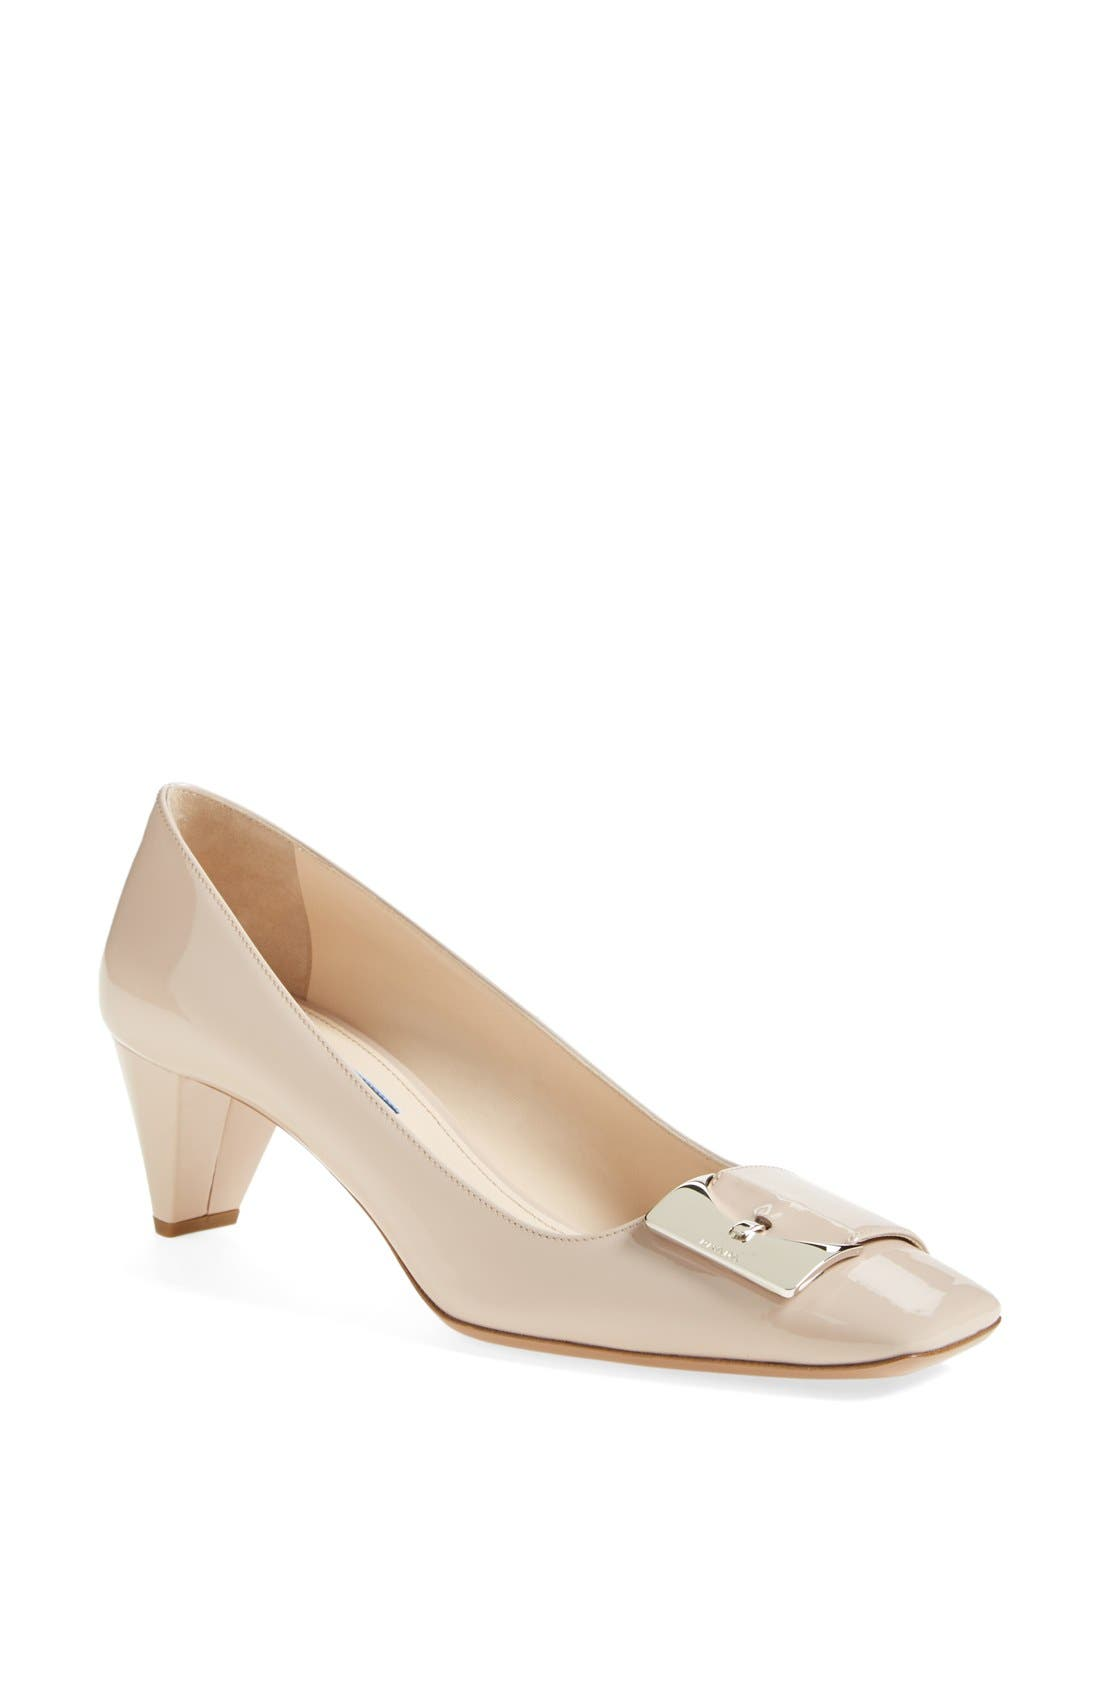 Main Image - Prada Buckle Pump